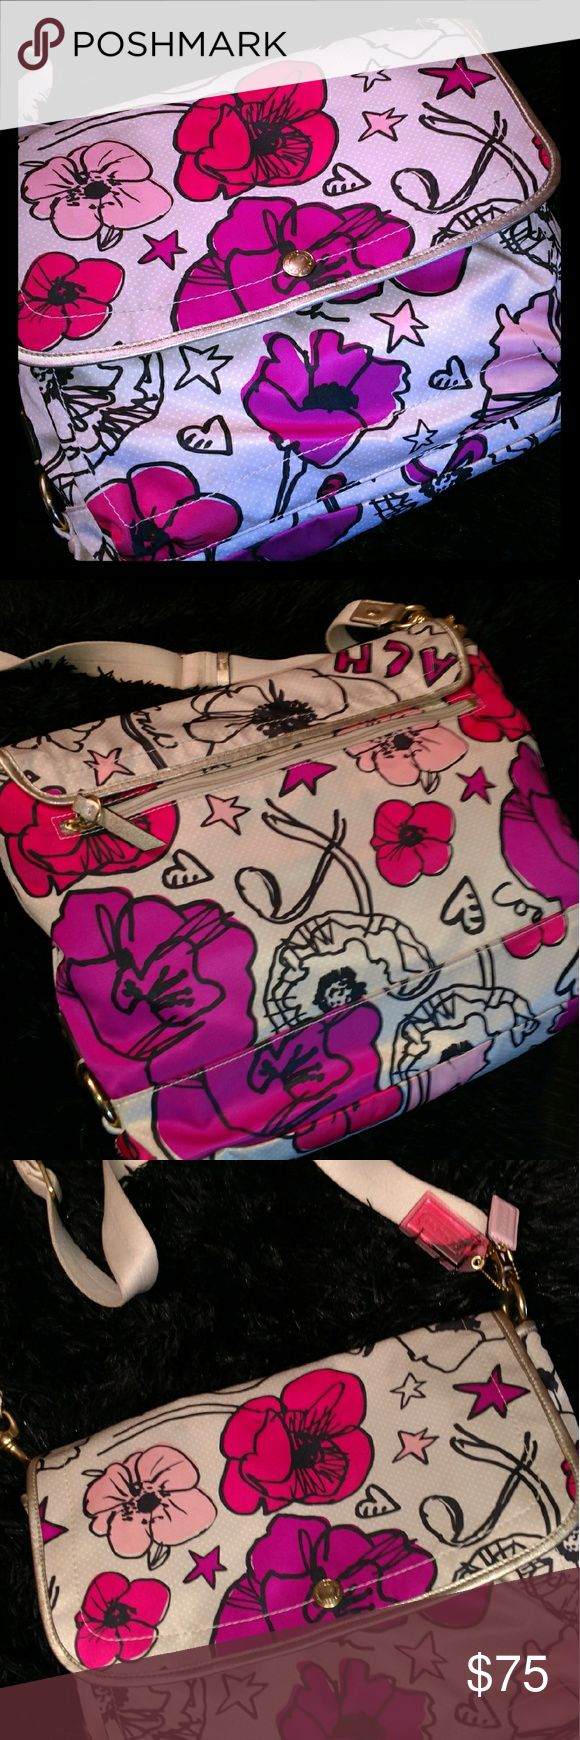 "EUC Super Cute Coach Messenger Bag! Uber cute authentic Coach messenger bag/crossbody bag! Beautiful floral pattern, satin finish 10"" x 13"" in size w/an adjustable canvas handle that can go  approx 30"" in height! Get it in time for spring! Coach Bags Crossbody Bags"